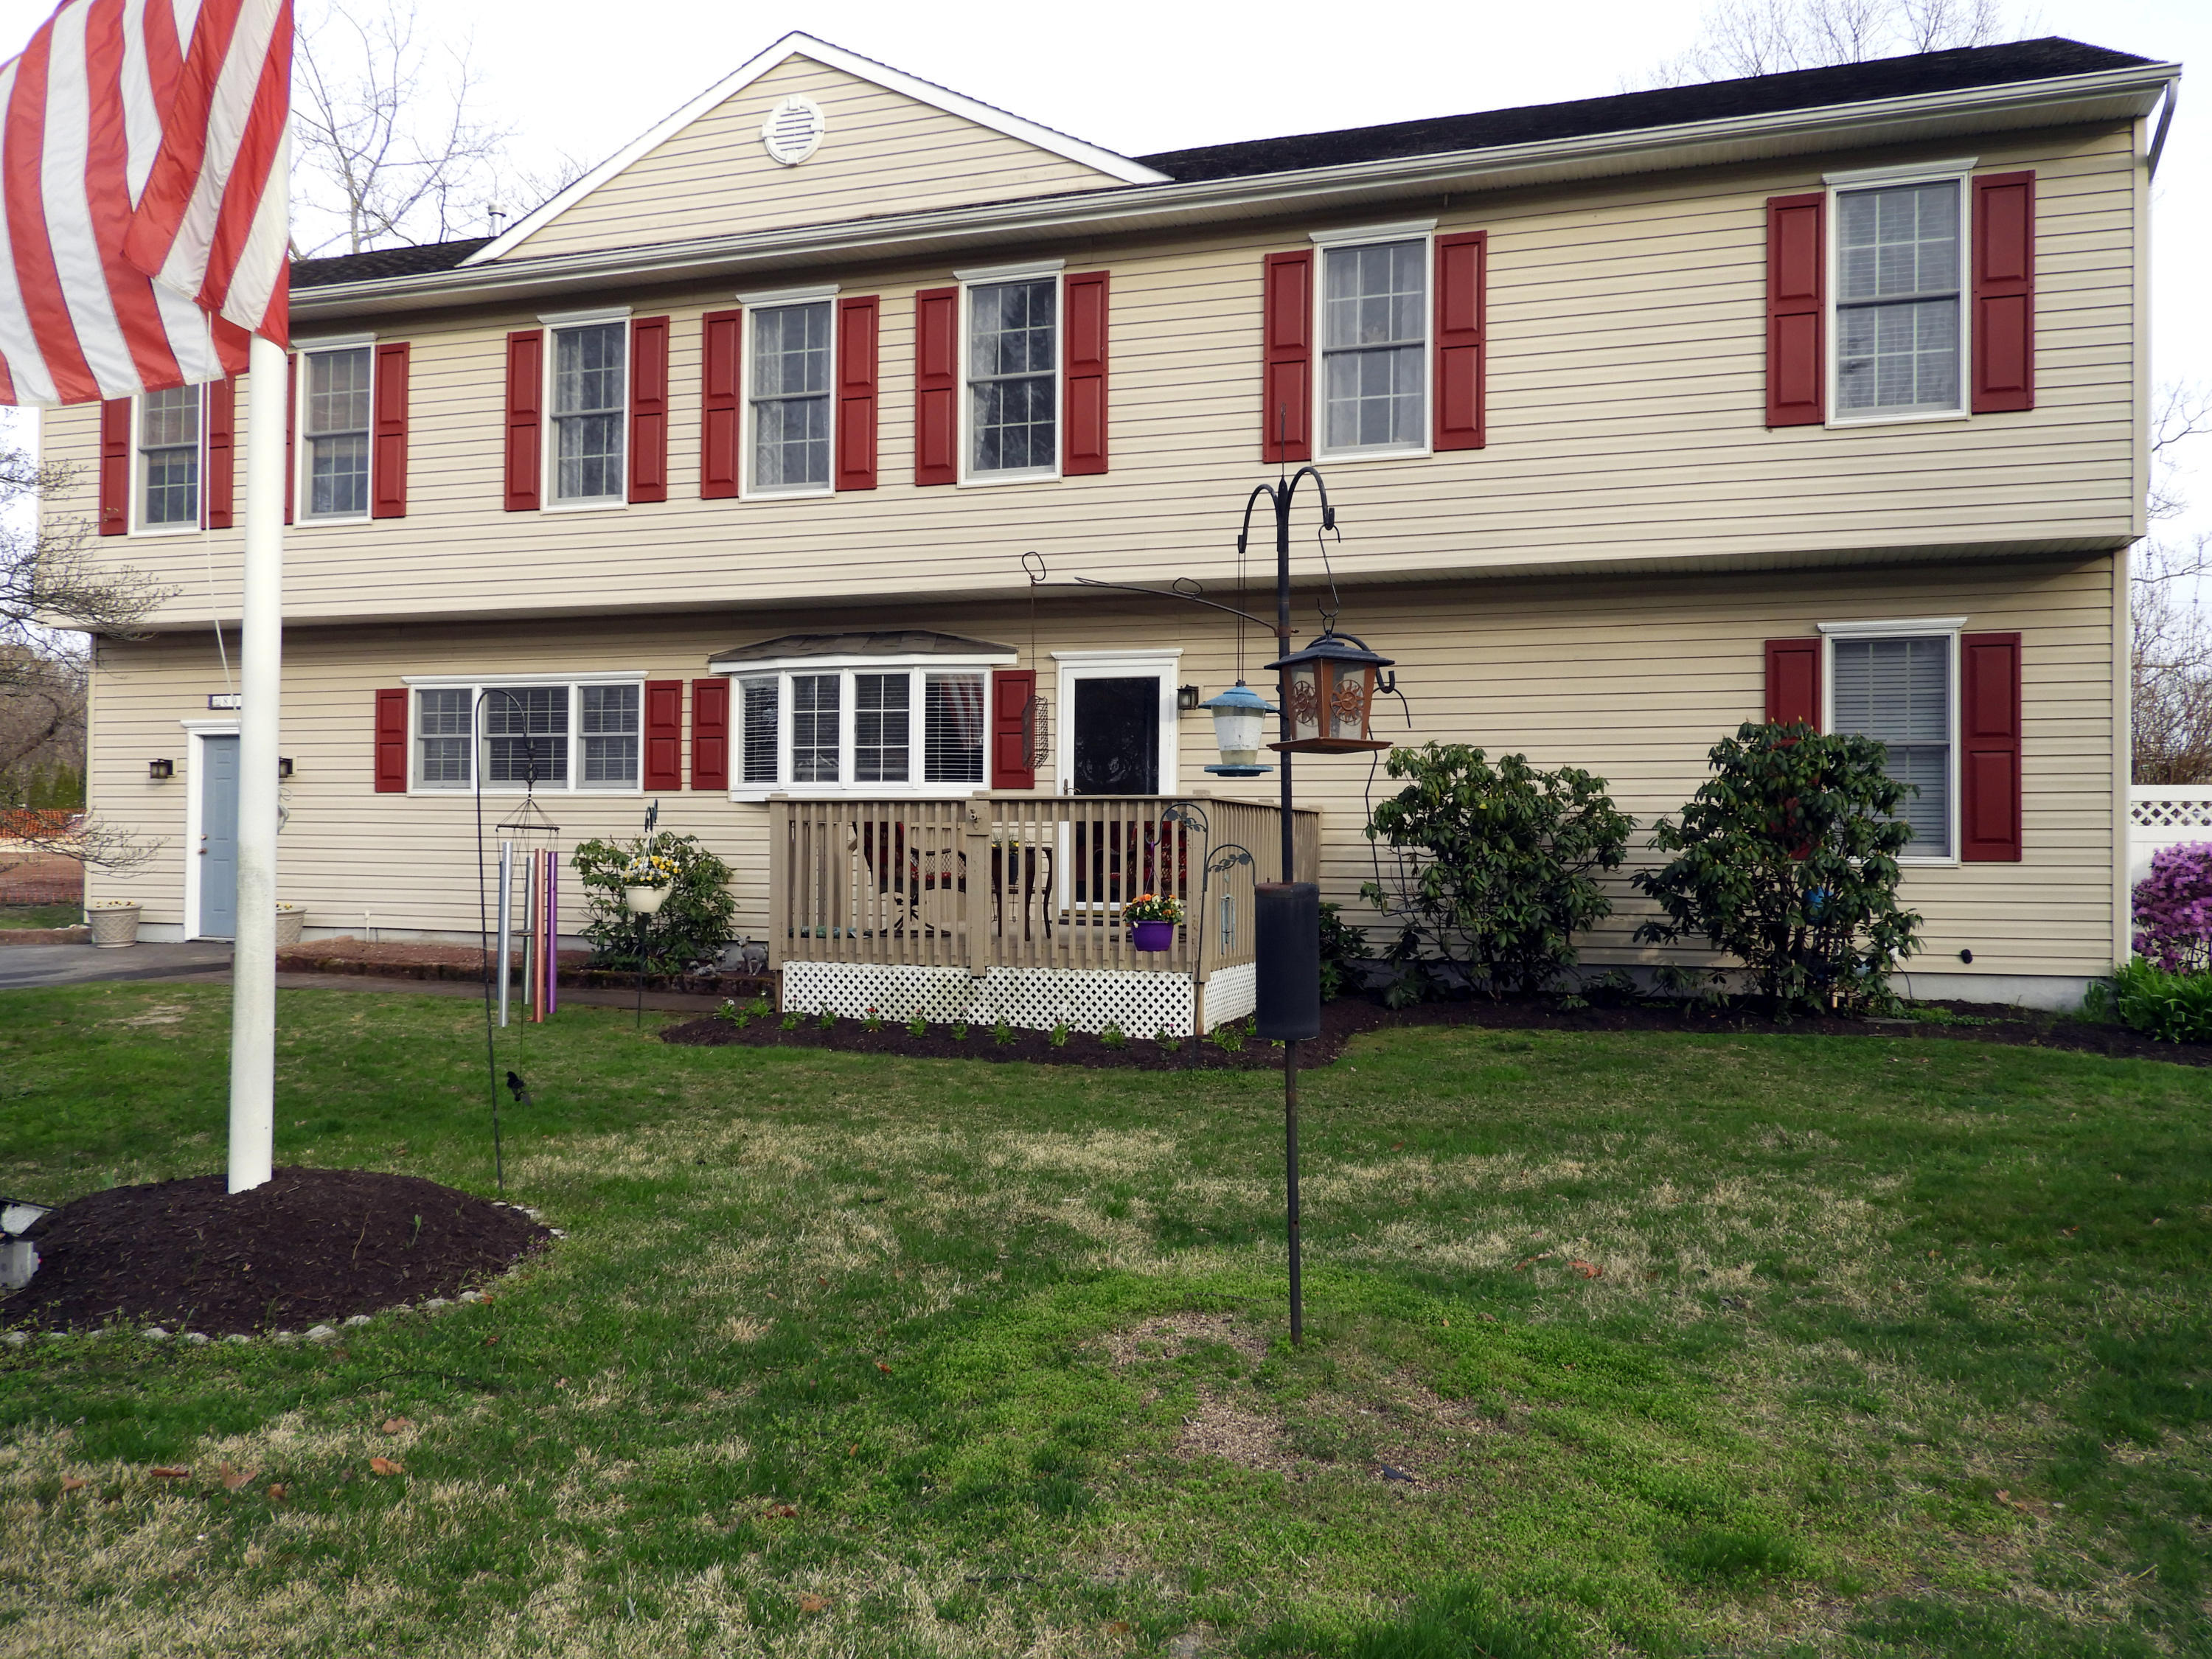 805 Neville Street, Toms River, New Jersey 08753, 5 Bedrooms Bedrooms, ,3 BathroomsBathrooms,Single Family,For Sale,805 Neville Street,2,22100757